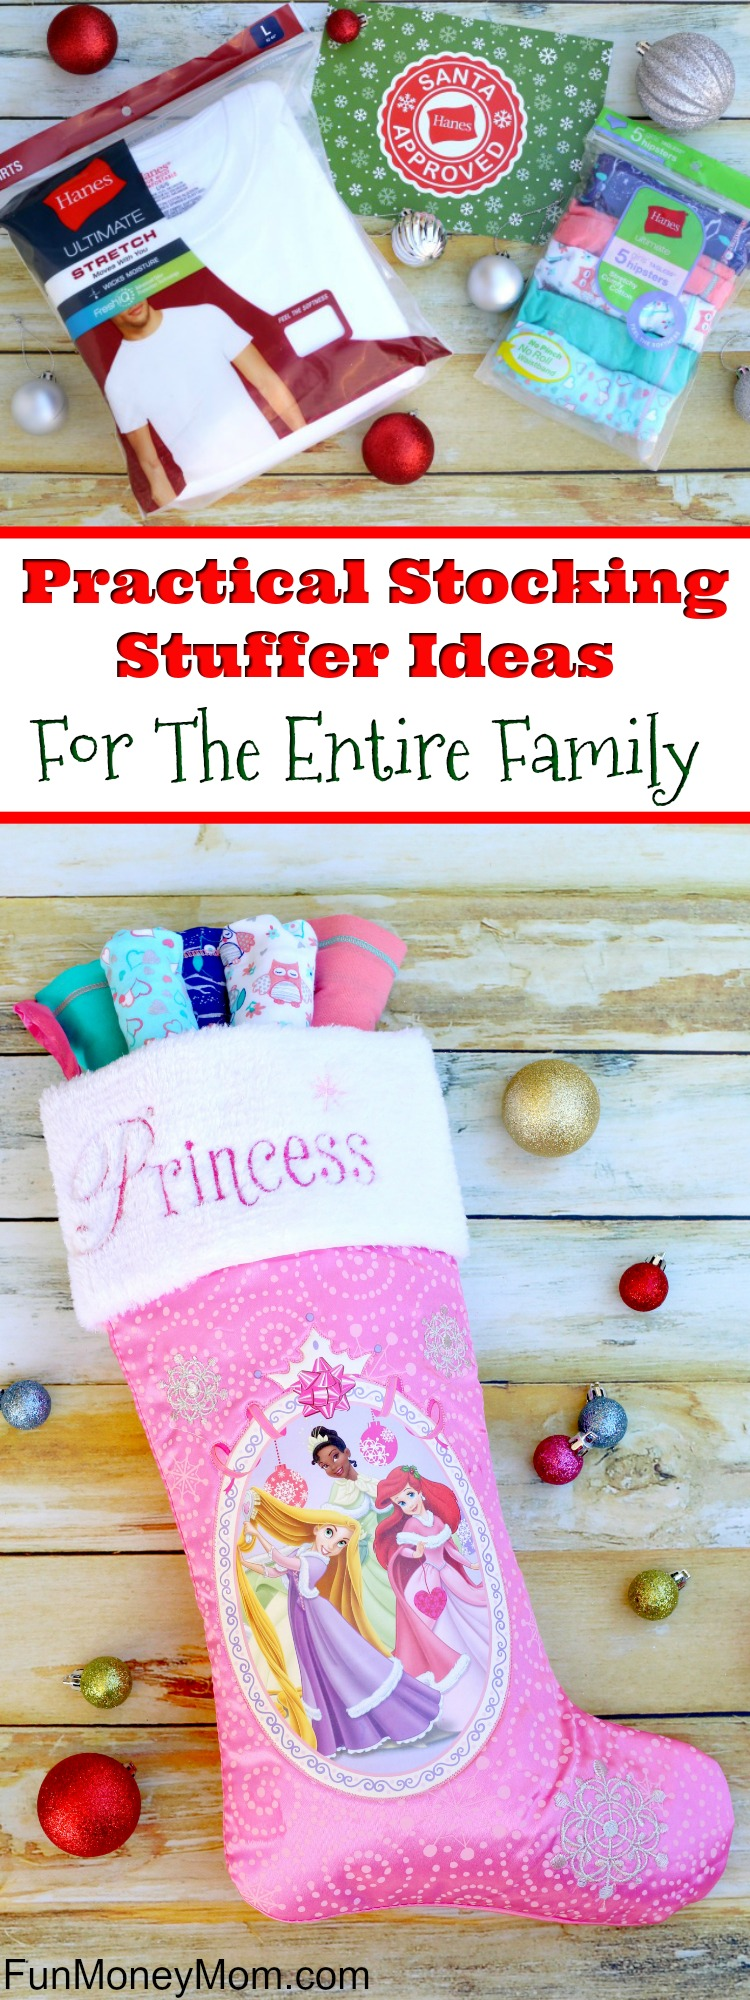 Looking for some practical stocking stuffer ideas? This year why not stuff stockings with great gifts that your family can actually use. #ad #HappyInHanes